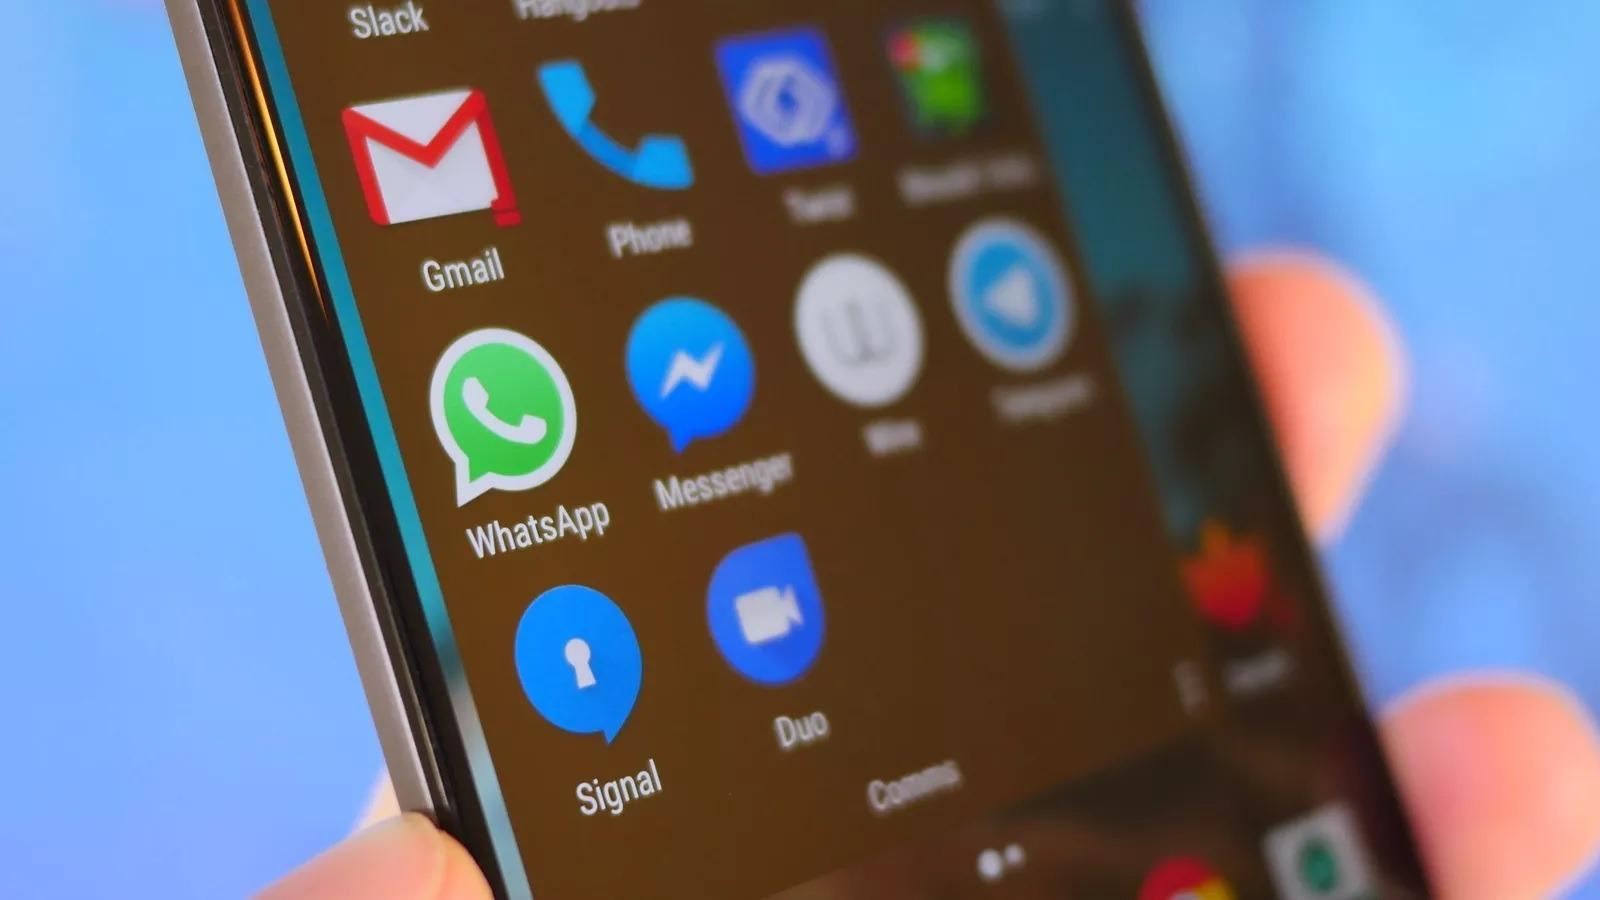 WhatsApp For iPhone Now Plays Facebook and Instagram Videos Within the App